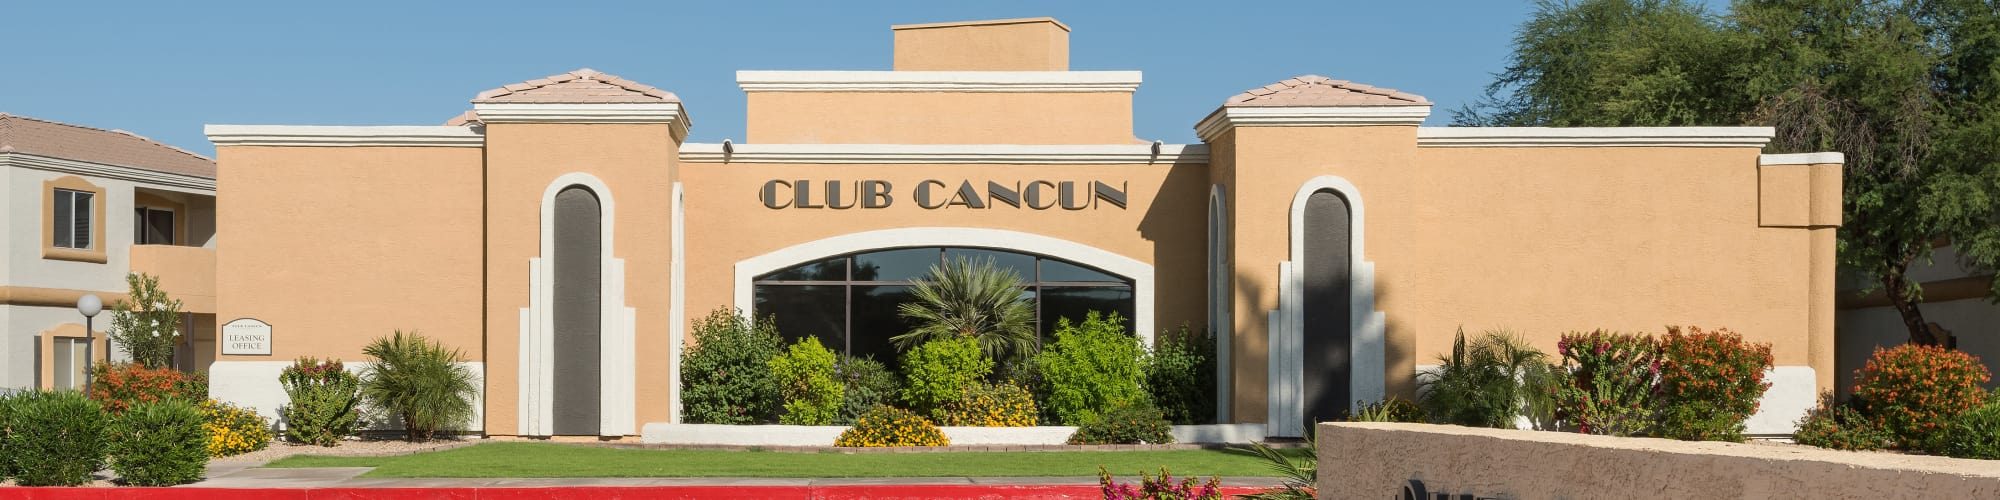 Map & Directions to Club Cancun in Chandler, Arizona